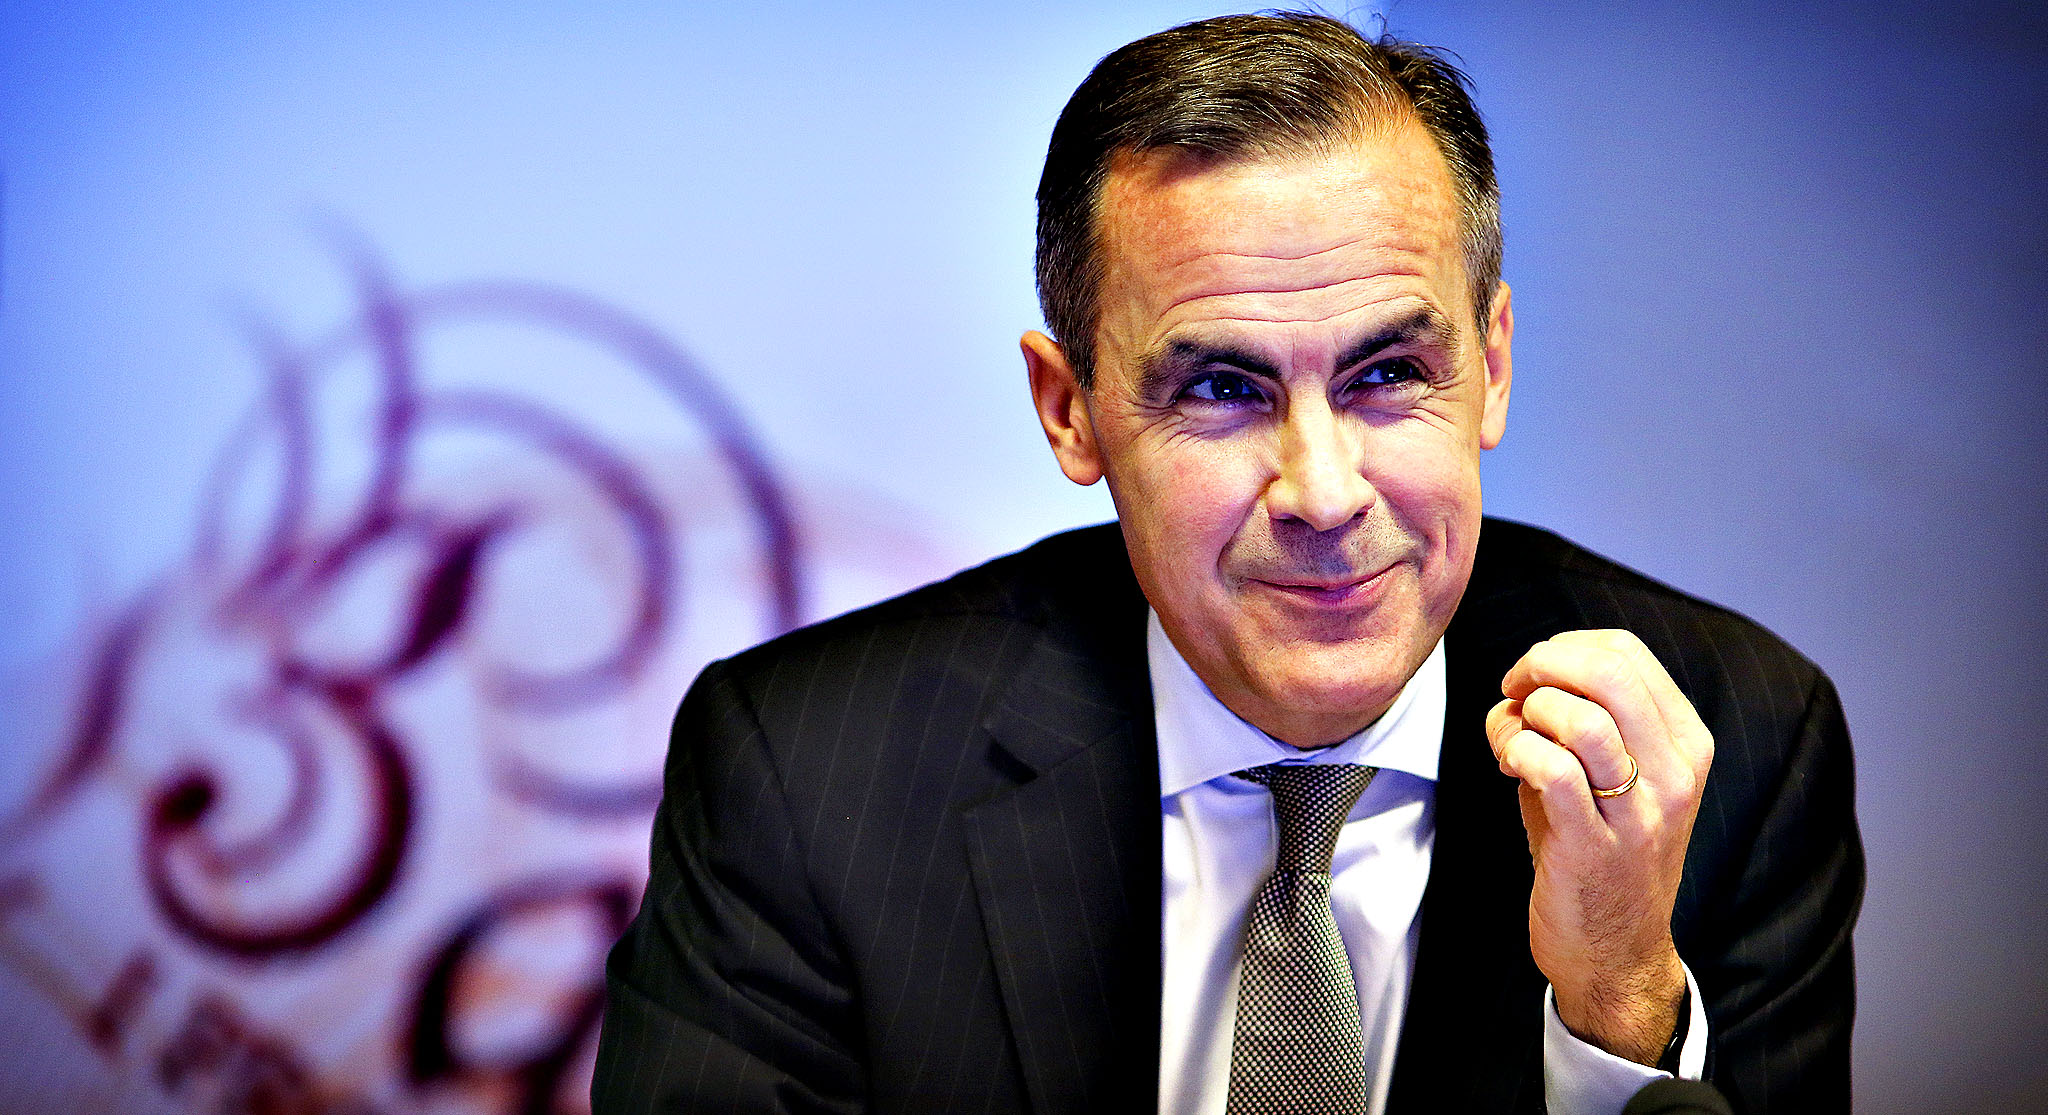 Bank of England governor, Mark Carney, conducts the quarterly inflation report press conference in the Bank of England this morning.